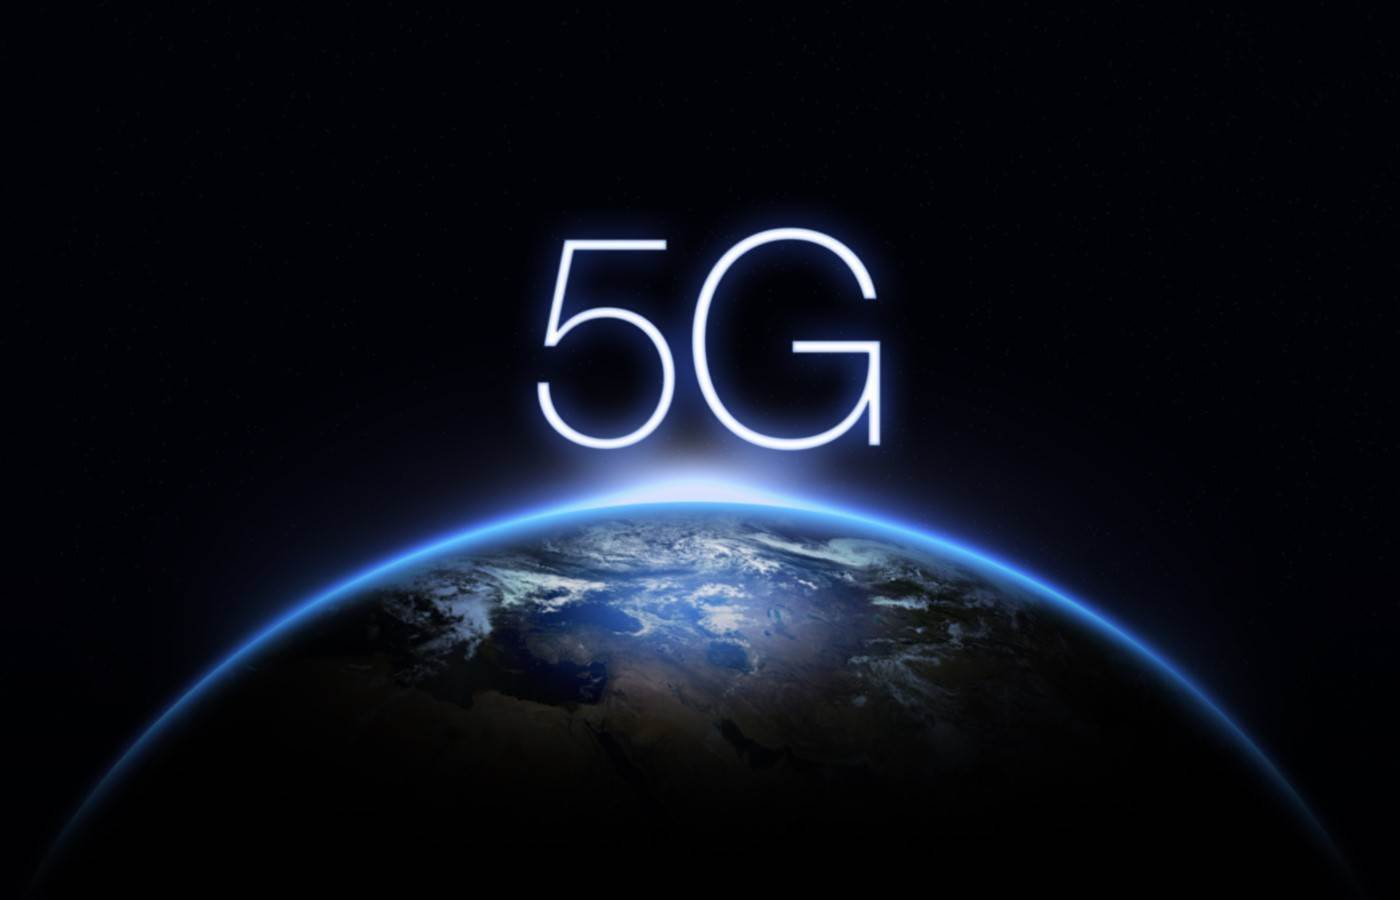 5G phone plans to appear in coming days